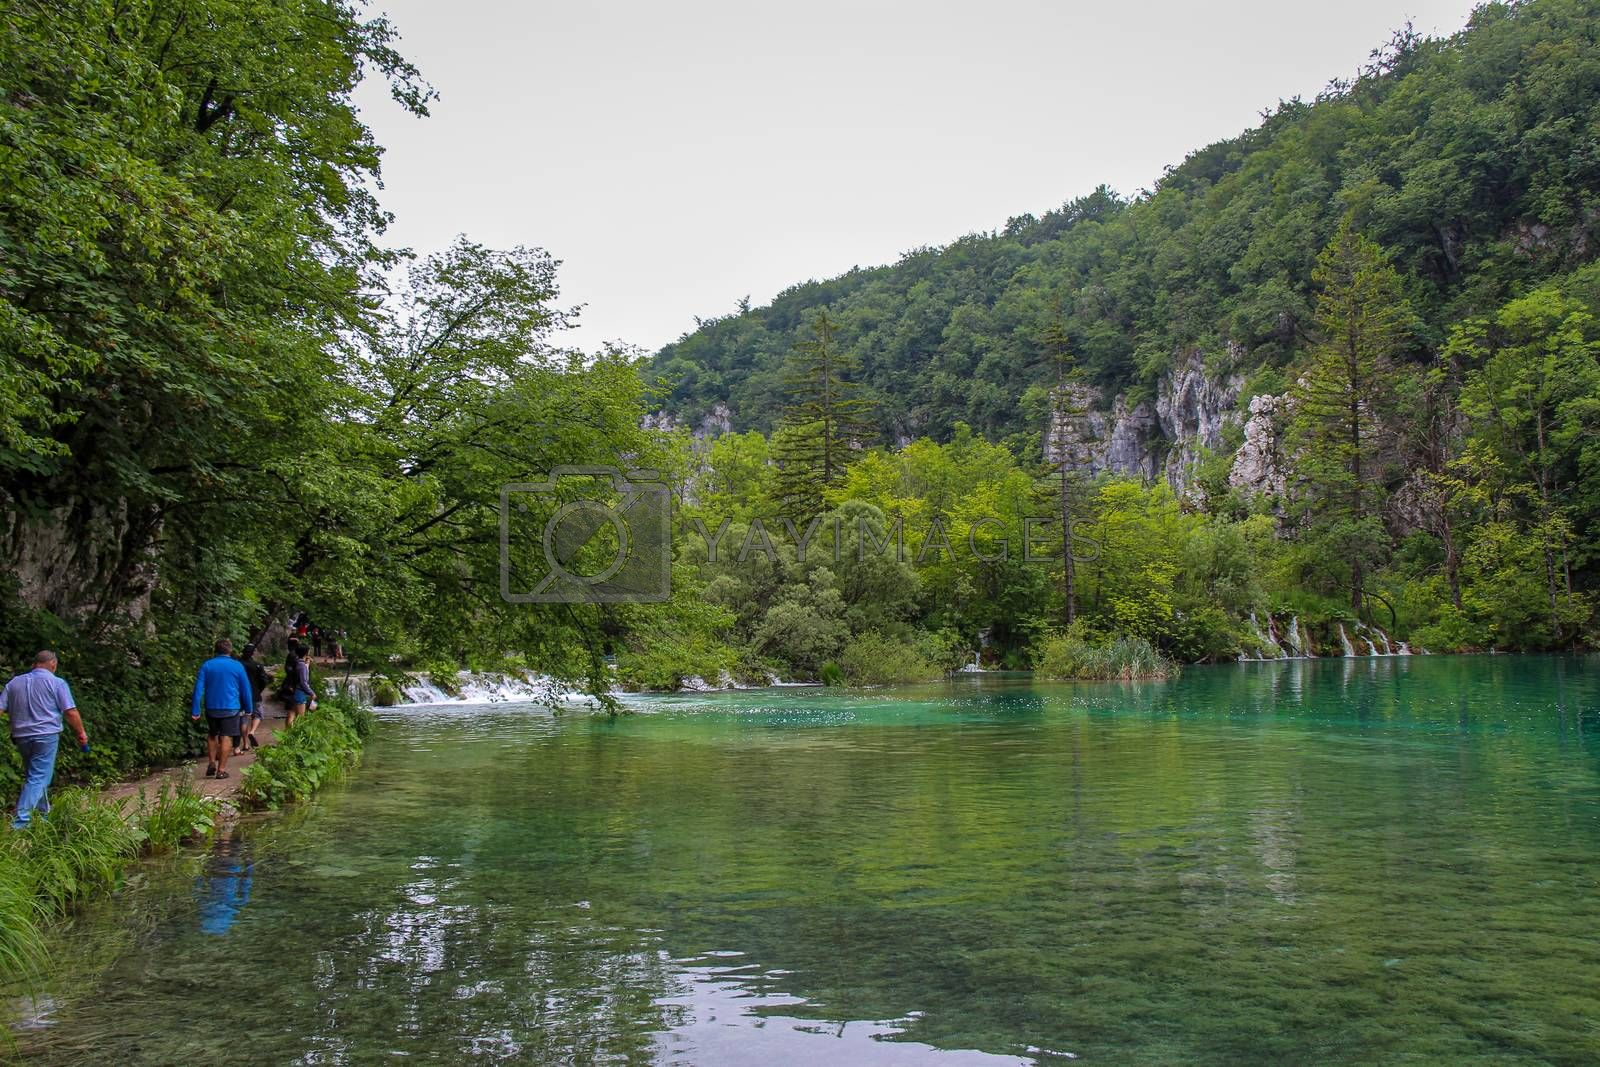 Plitvice Lakes, Croatia - July 14th 2018: Tourists walking along a path by a shallow lake, with waterfalls in the background, at Plitvice Lakes, UNESCO World Heritage Site, Croatia